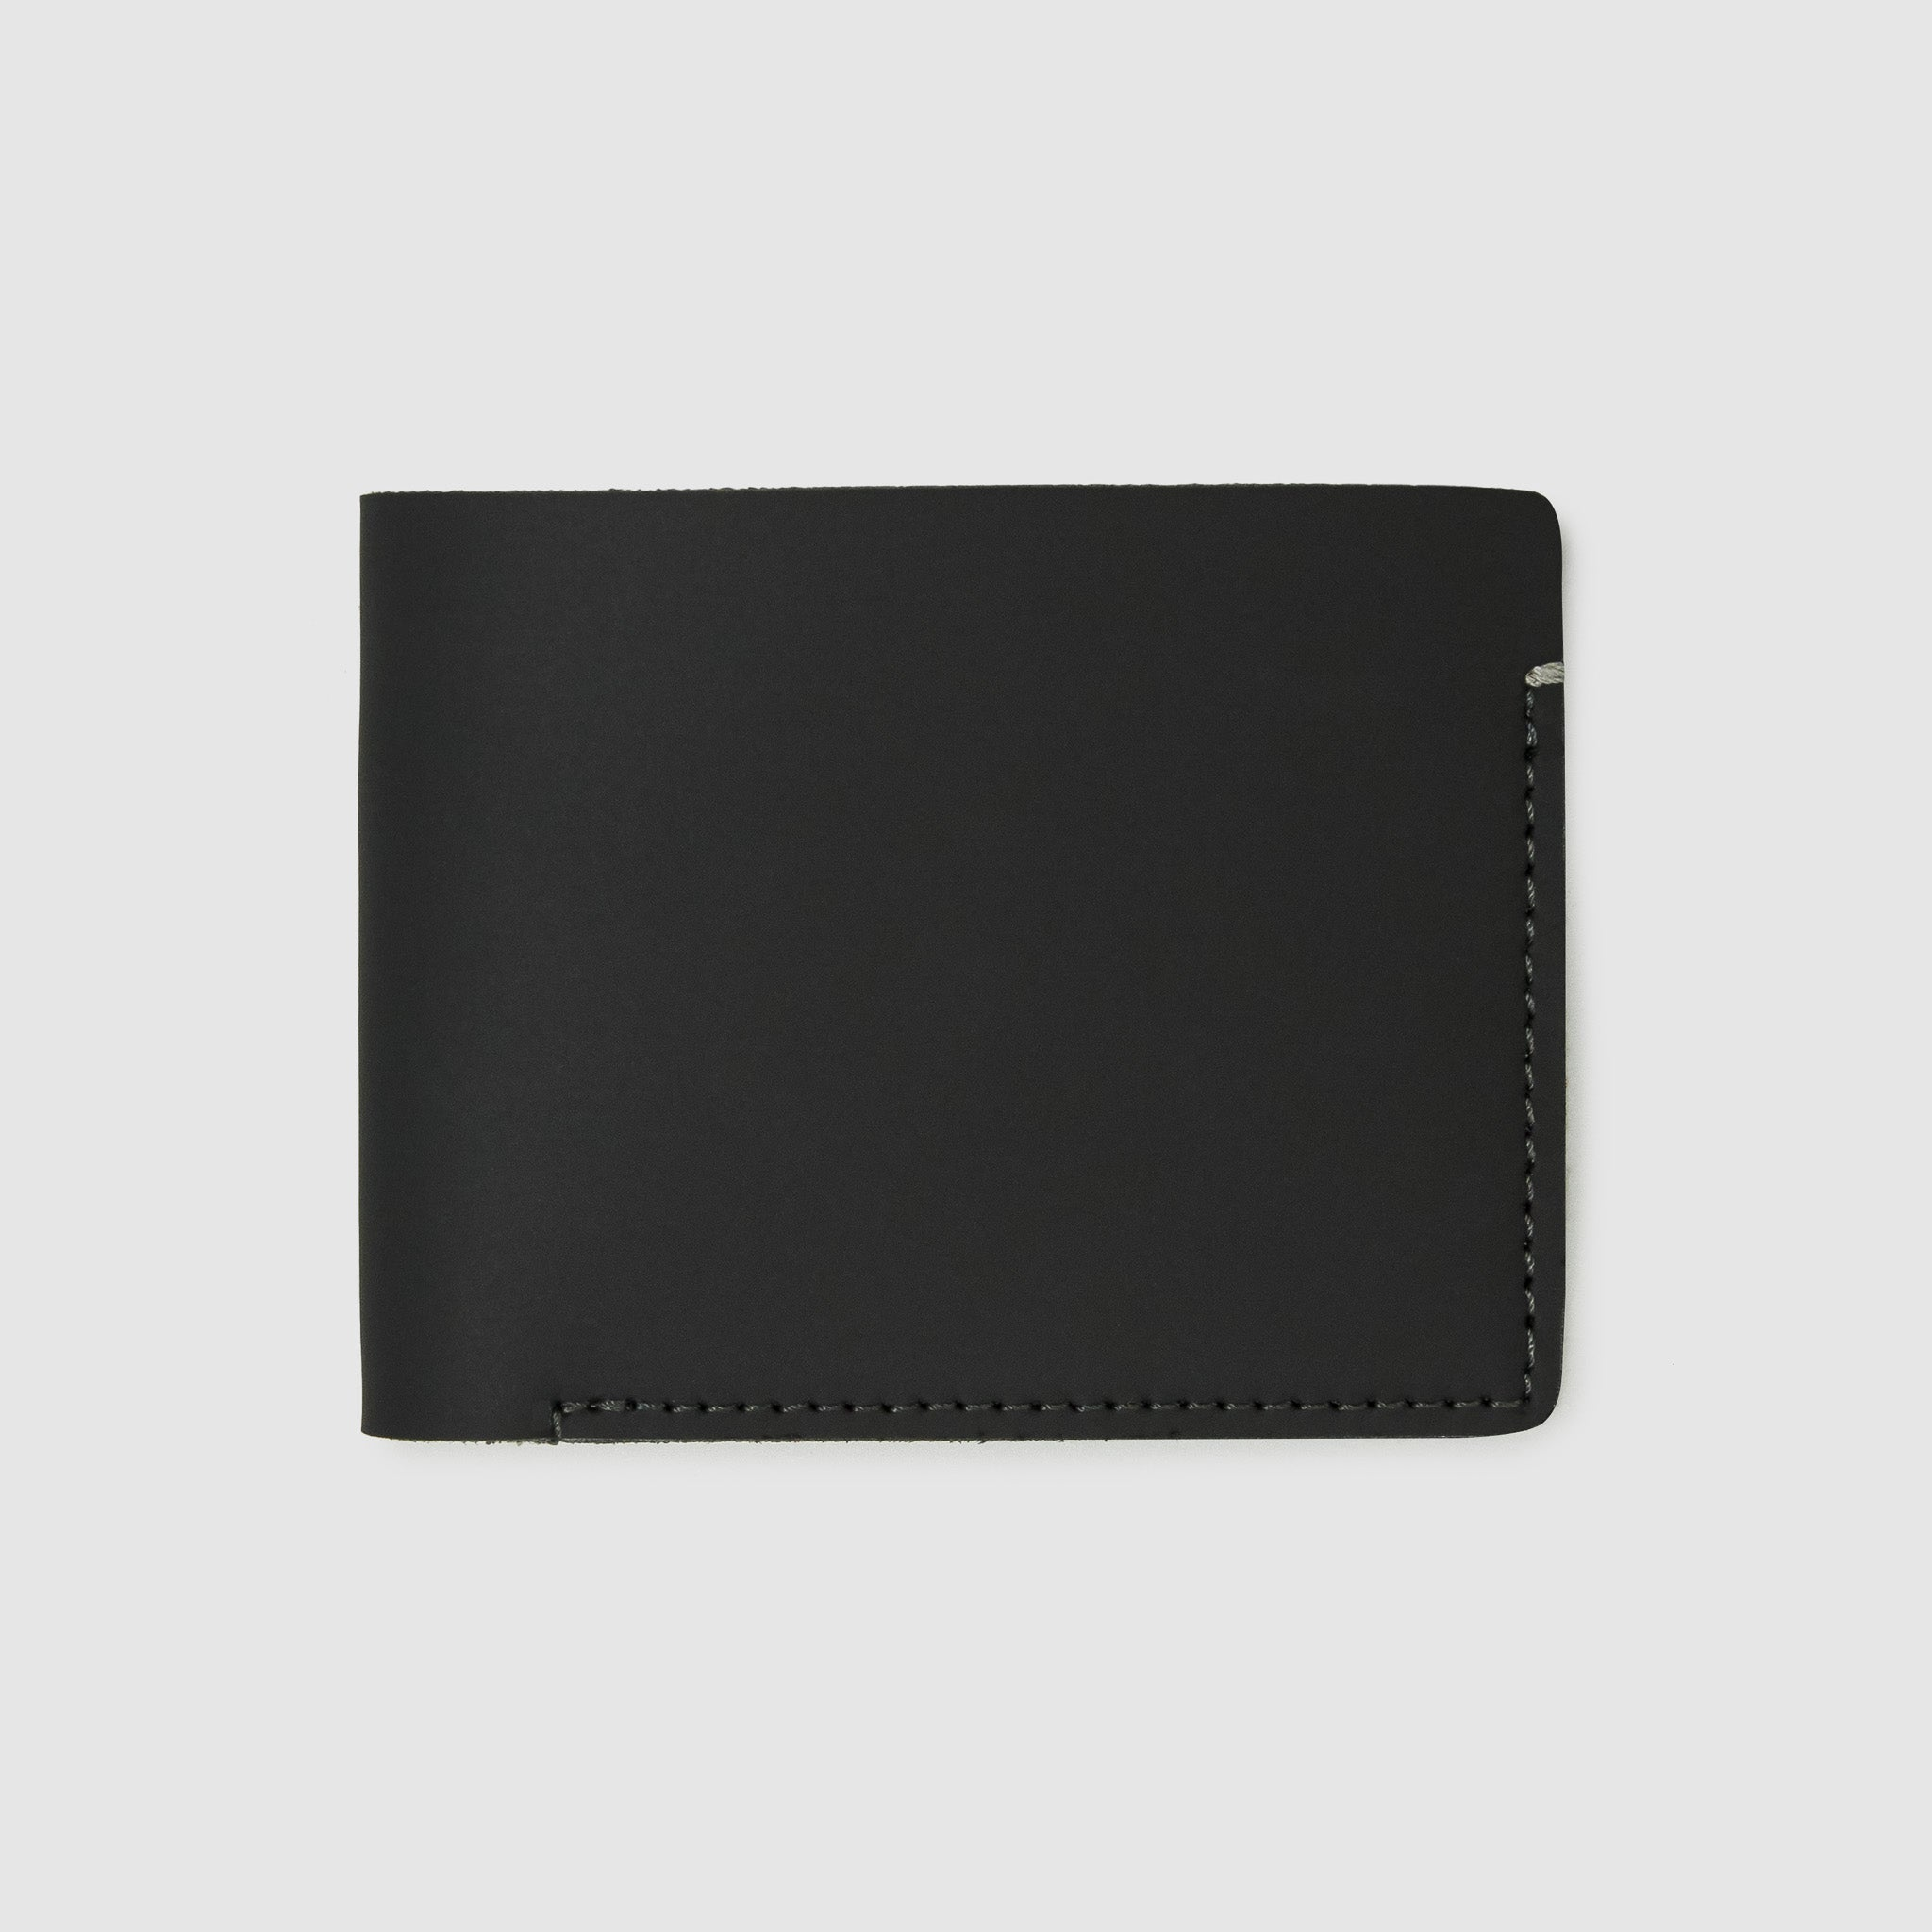 Anson Calder Billfold Wallet sport Leather _sport-black